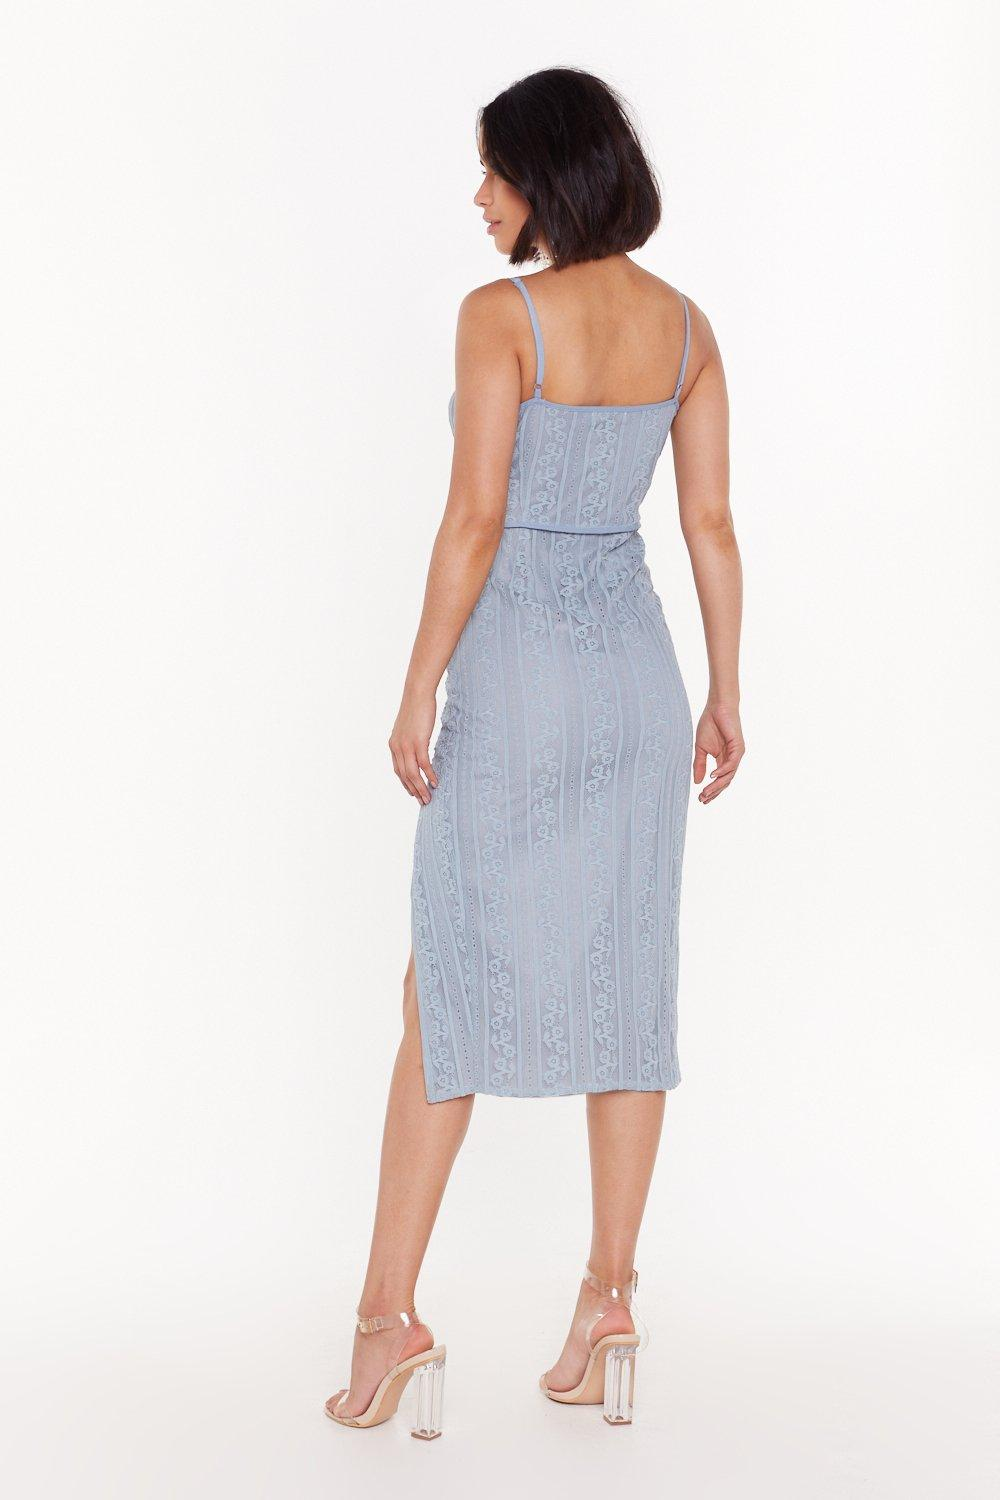 a2f2cfd8b693 Let's Lace It Strappy Midi Dress | Shop Clothes at Nasty Gal!